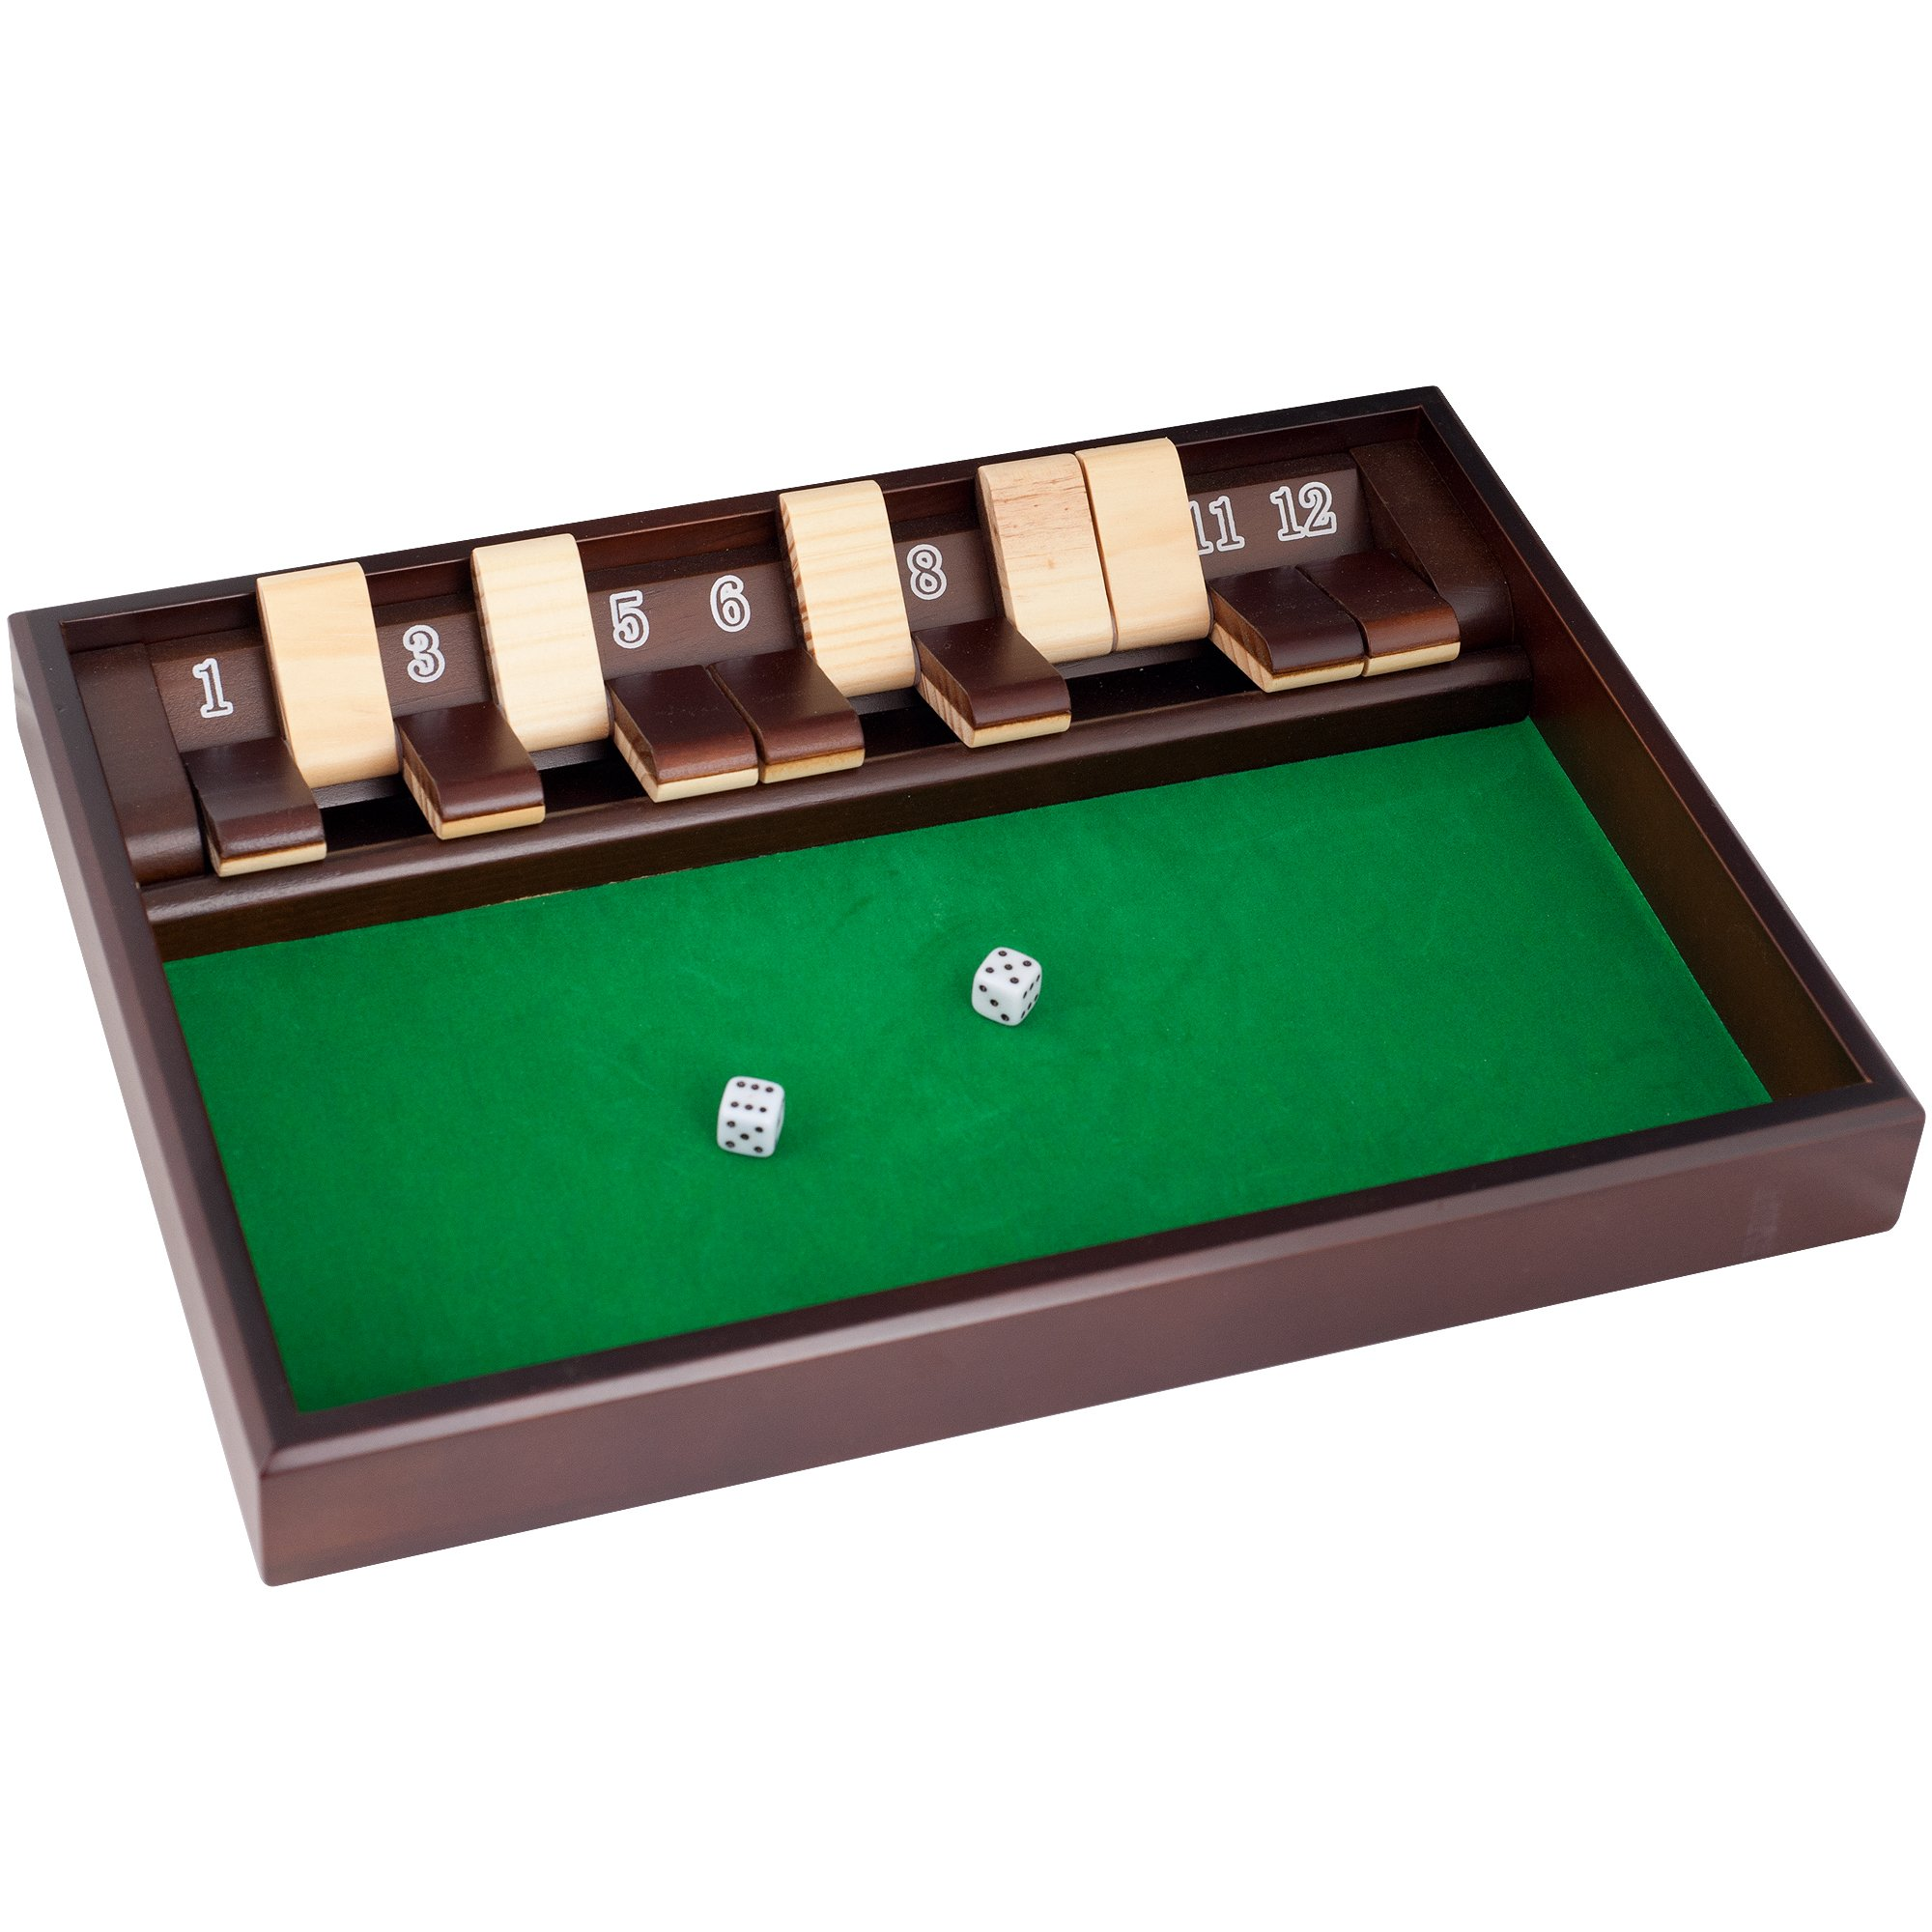 Trademark Games Shut The Box Game - 12 Numbers (Includes Dice)